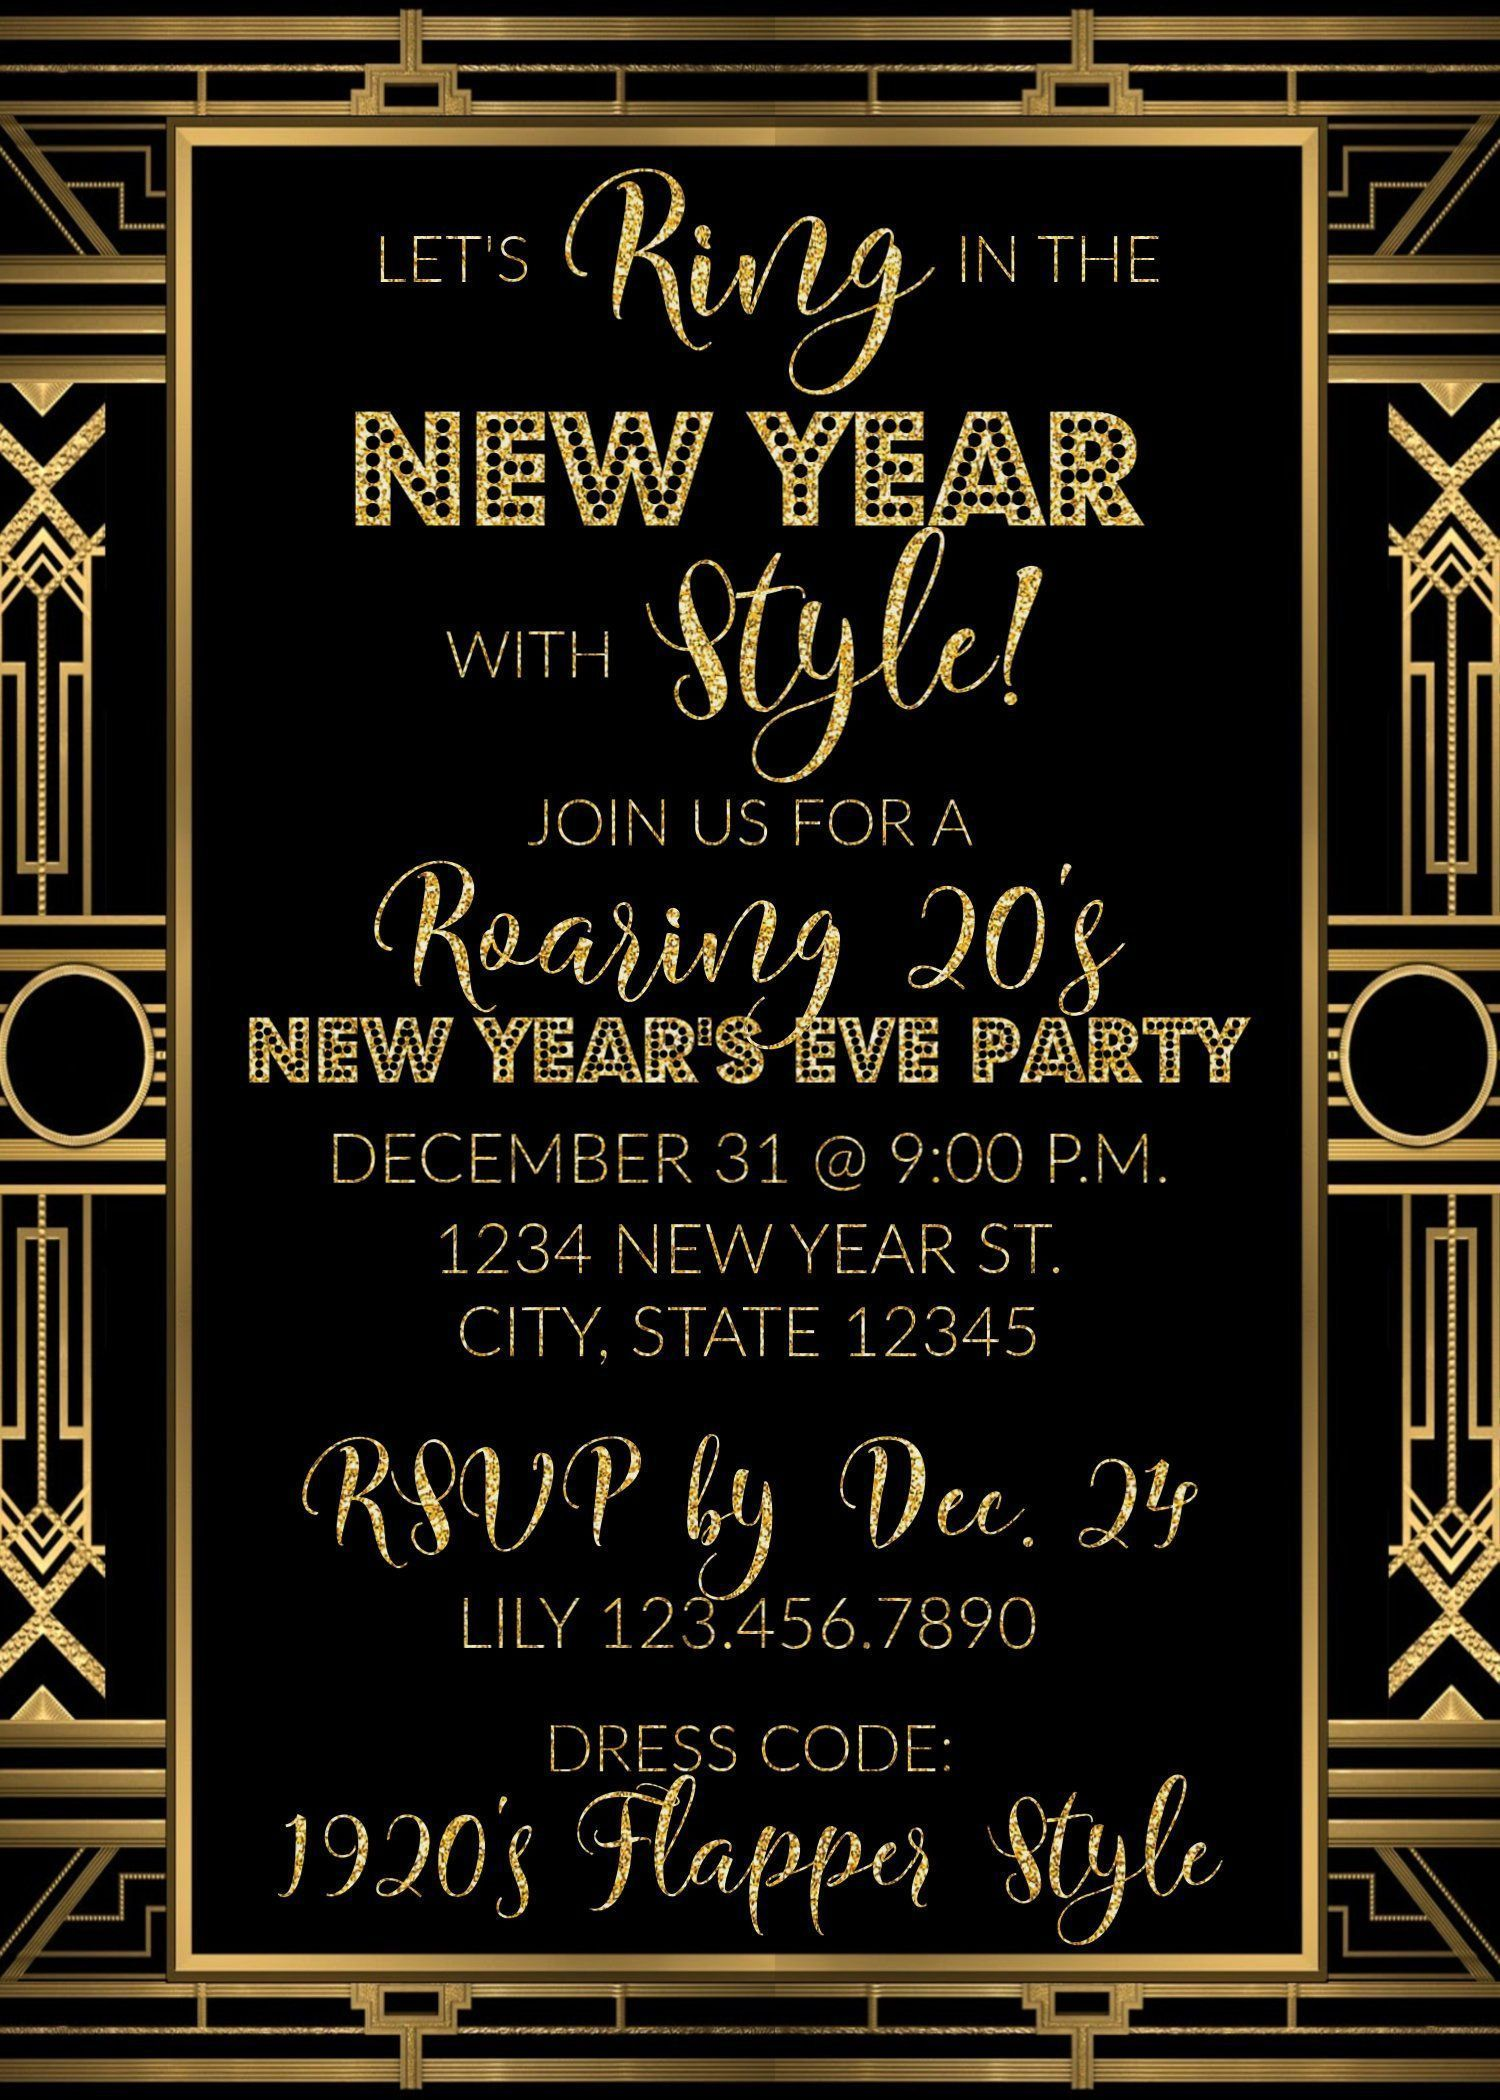 Roaring 20s New Years Eve Party Invitation Ring In The New Year New Years Party Invitation Roaring 20s Party Invitation New Year S Eve Party Themes New Years Eve Party New Years